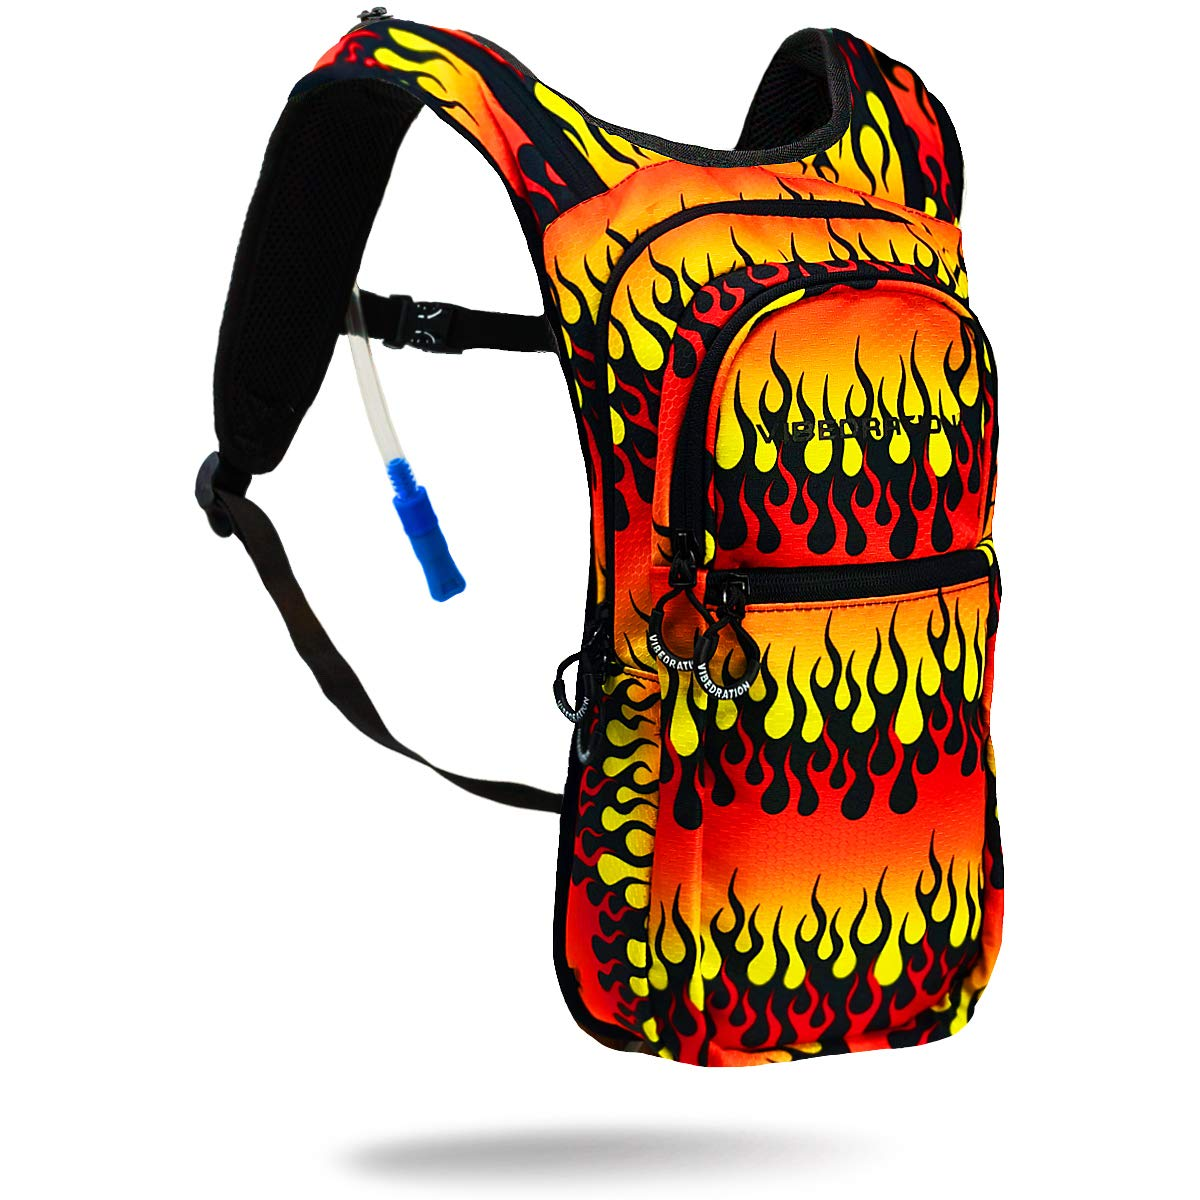 Vibedration VIP 2 Liter Hydration Pack | Festival Rave Hydration, Hiking Camping Backpack (Fire AF)